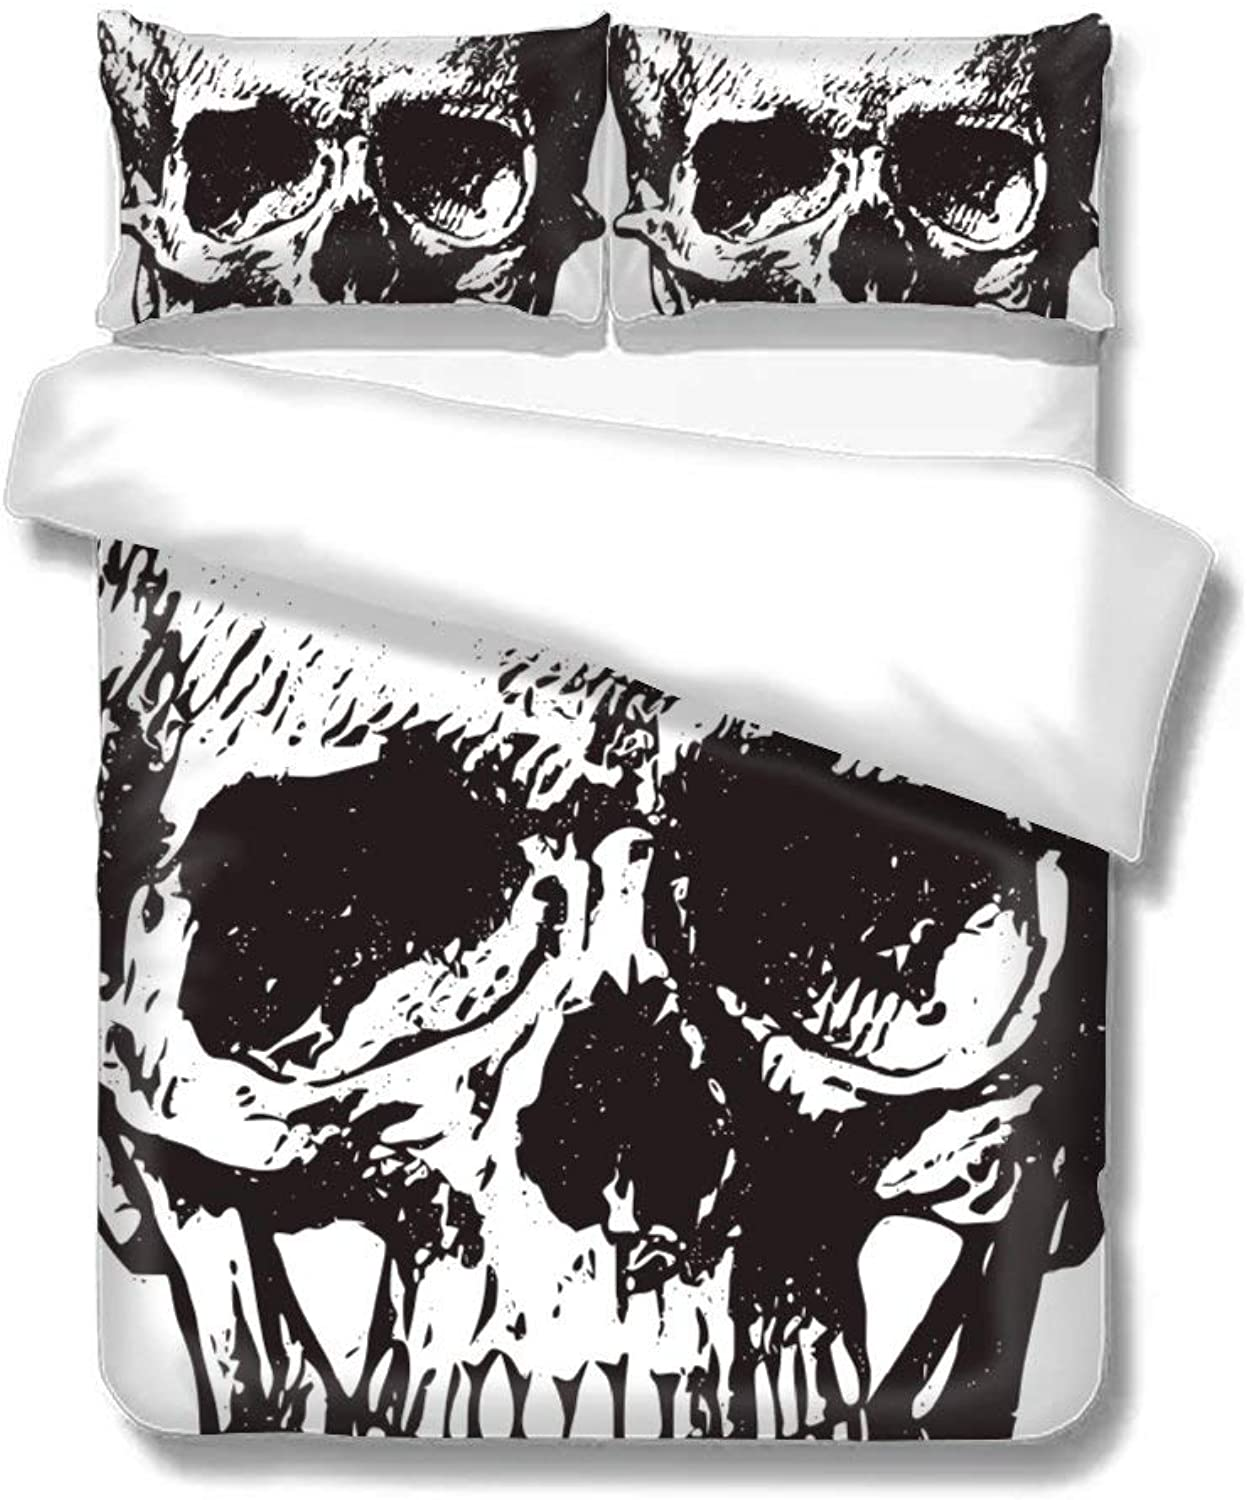 Set of Three On The Bed Skull Taro Skeleton Man Home Bedding Duvet Cover Set Bed Sheets Set Soft Comfortable Breathable King Size